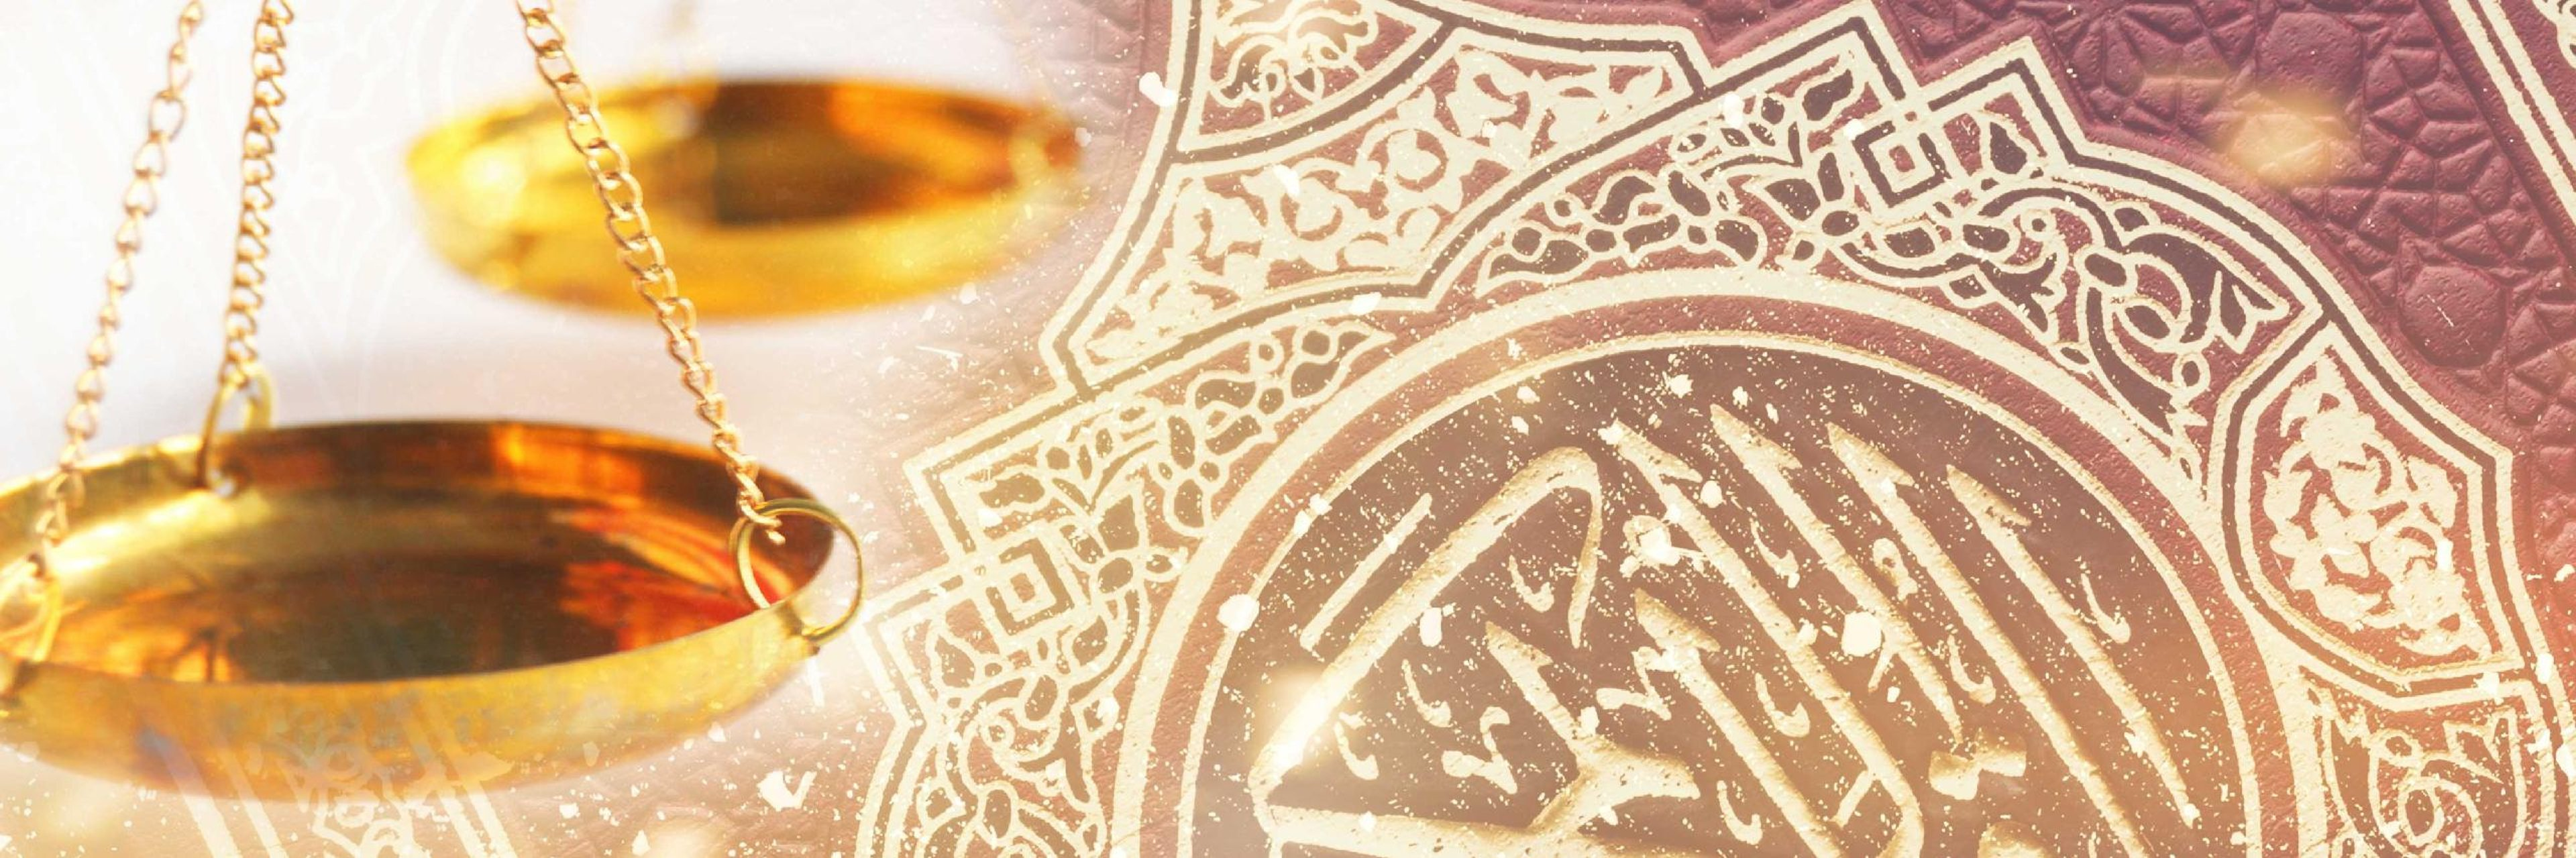 Writ and Wisdom: The Quran's Moral Narrative